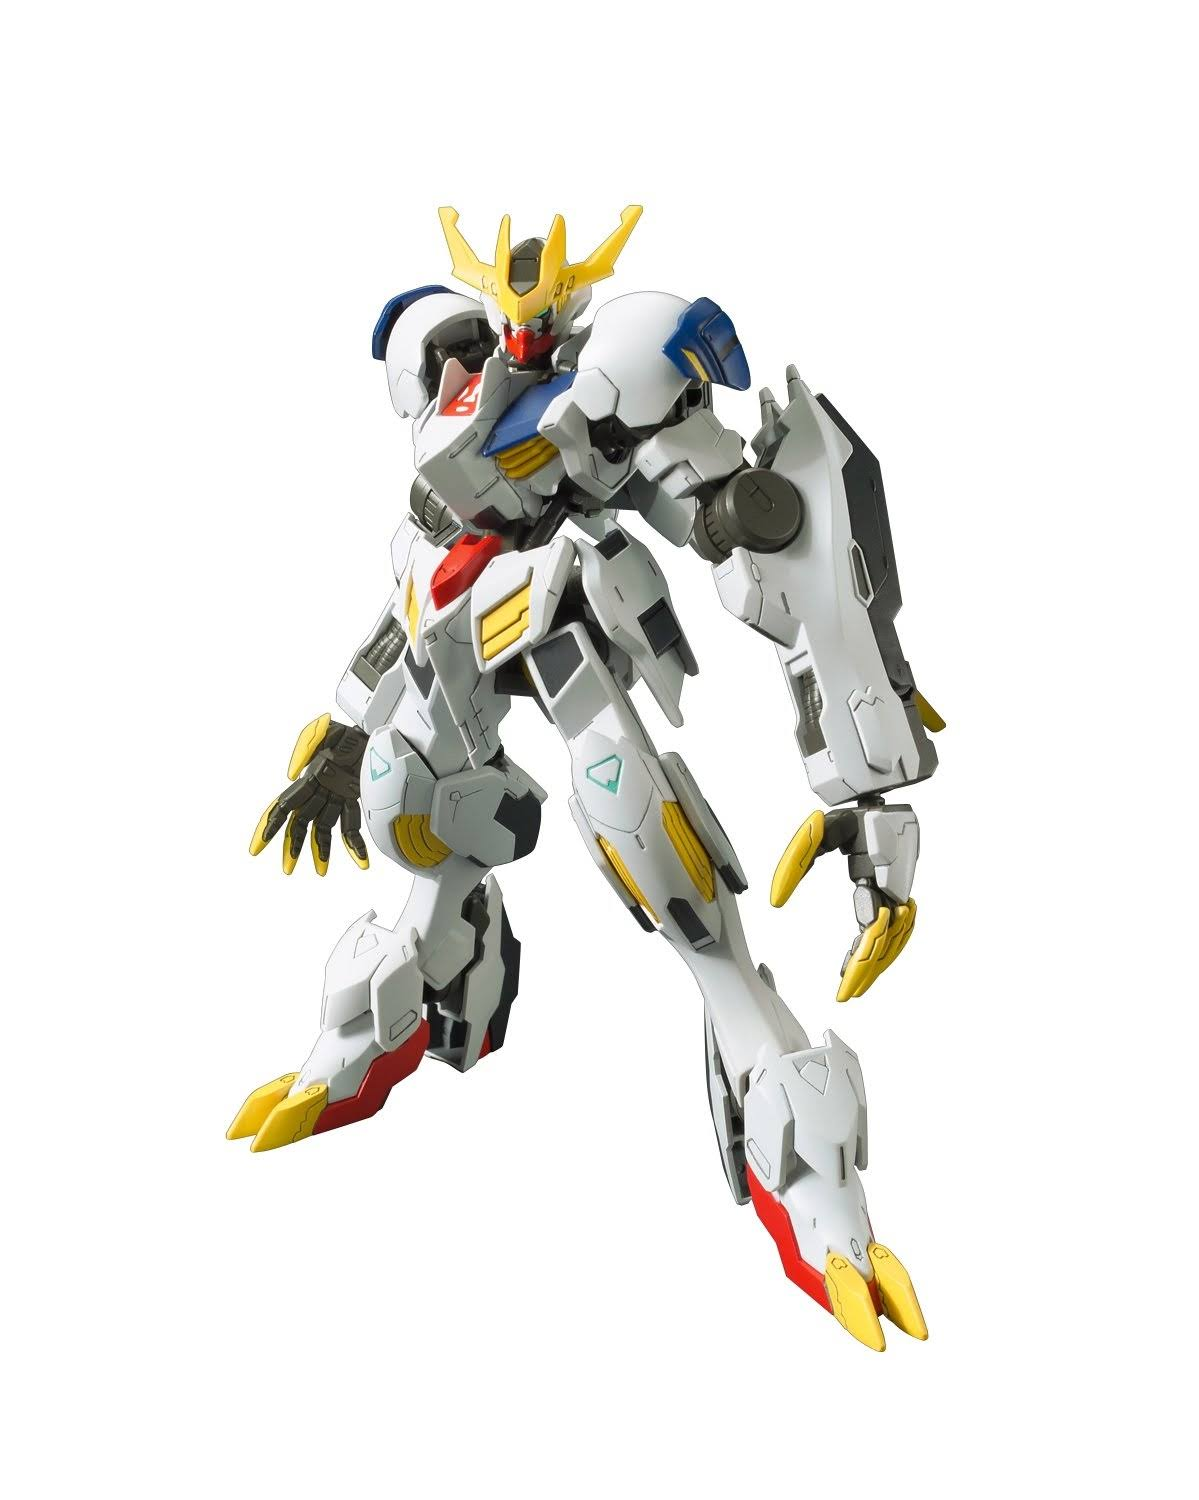 Bandai Barbatos Lupus Rex Gundam Model Kit - 1/144 Scale